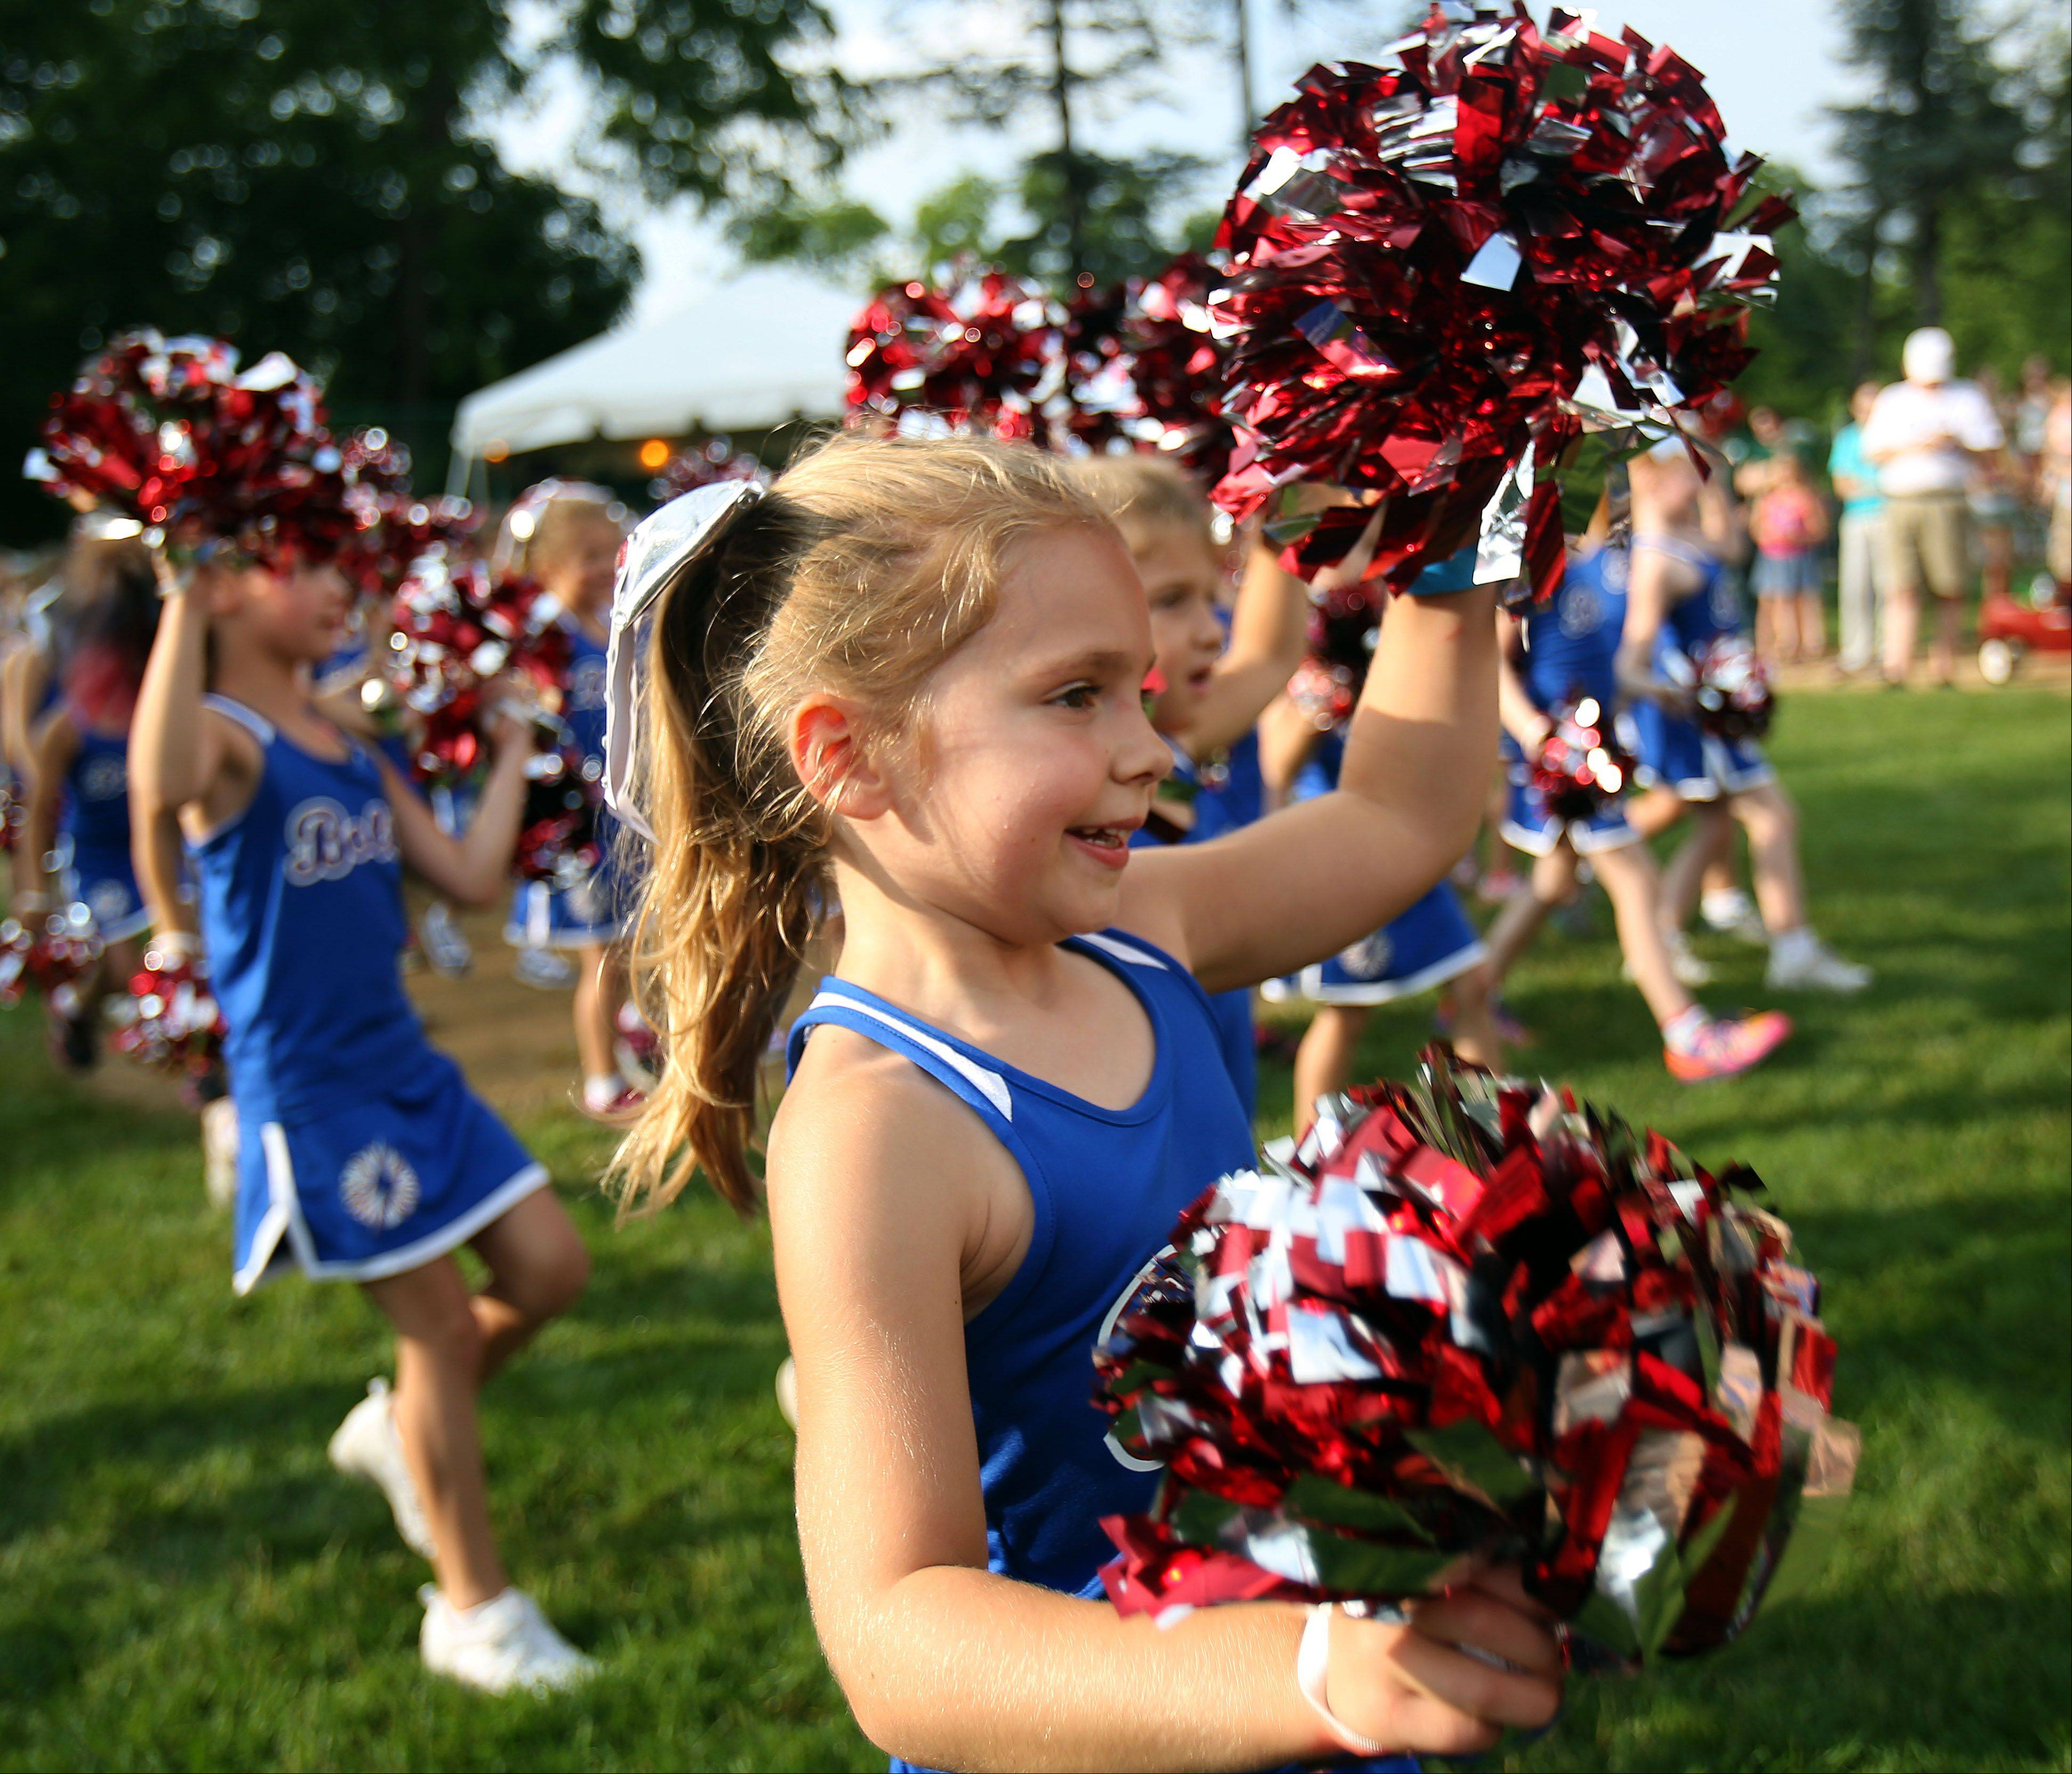 Five-year-old Caroline Gibbs of Lincolnshire and the rest of the Bolts Pom team perform during Lincolnshire's Red, White & Boom celebration Wednesday in Spring Lake Park.